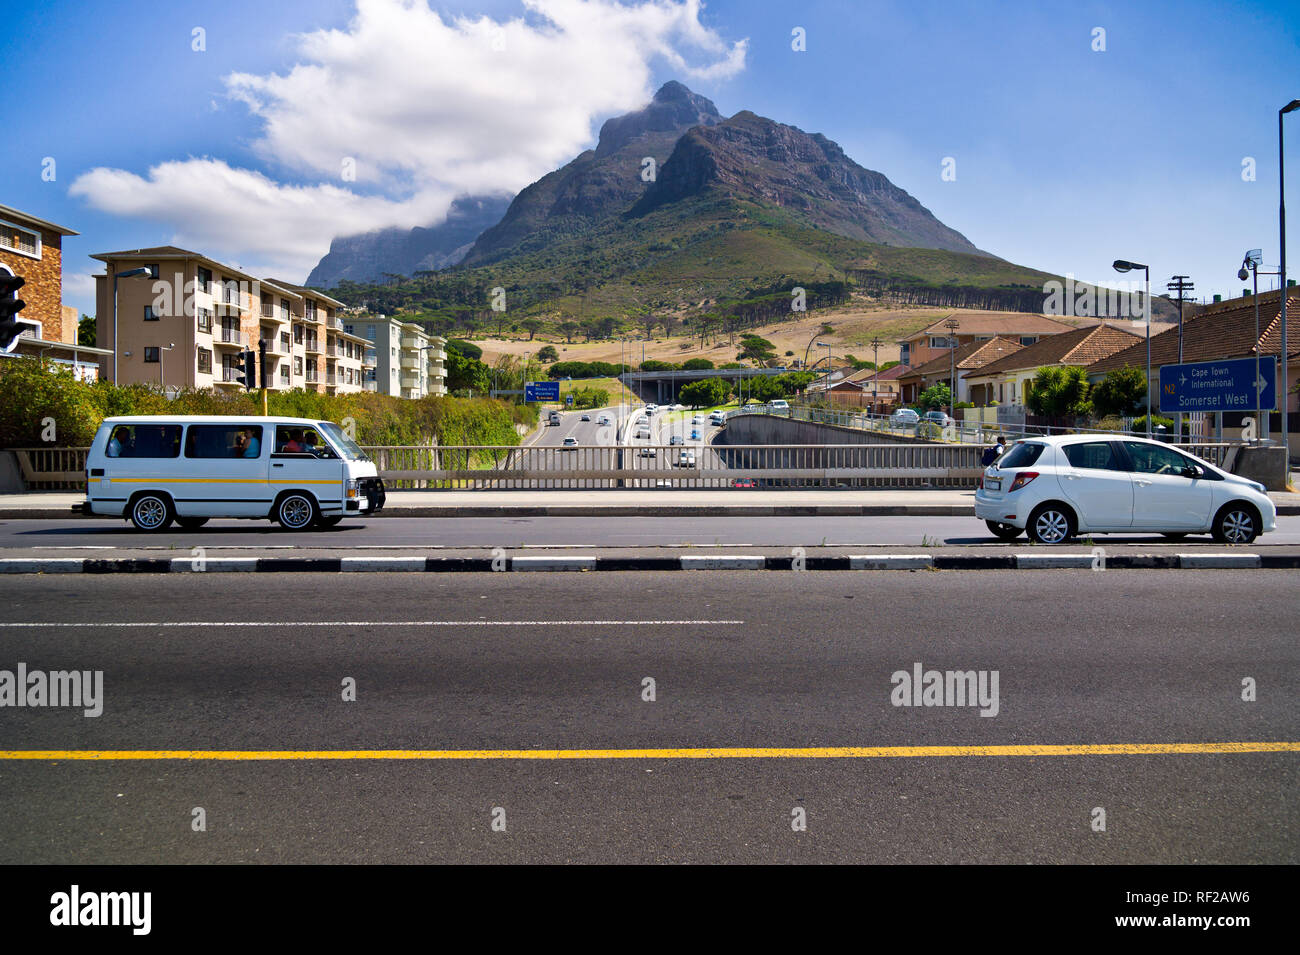 Main Road and the M3 Highway are always busy transit routes under Devil's Peak. - Stock Image